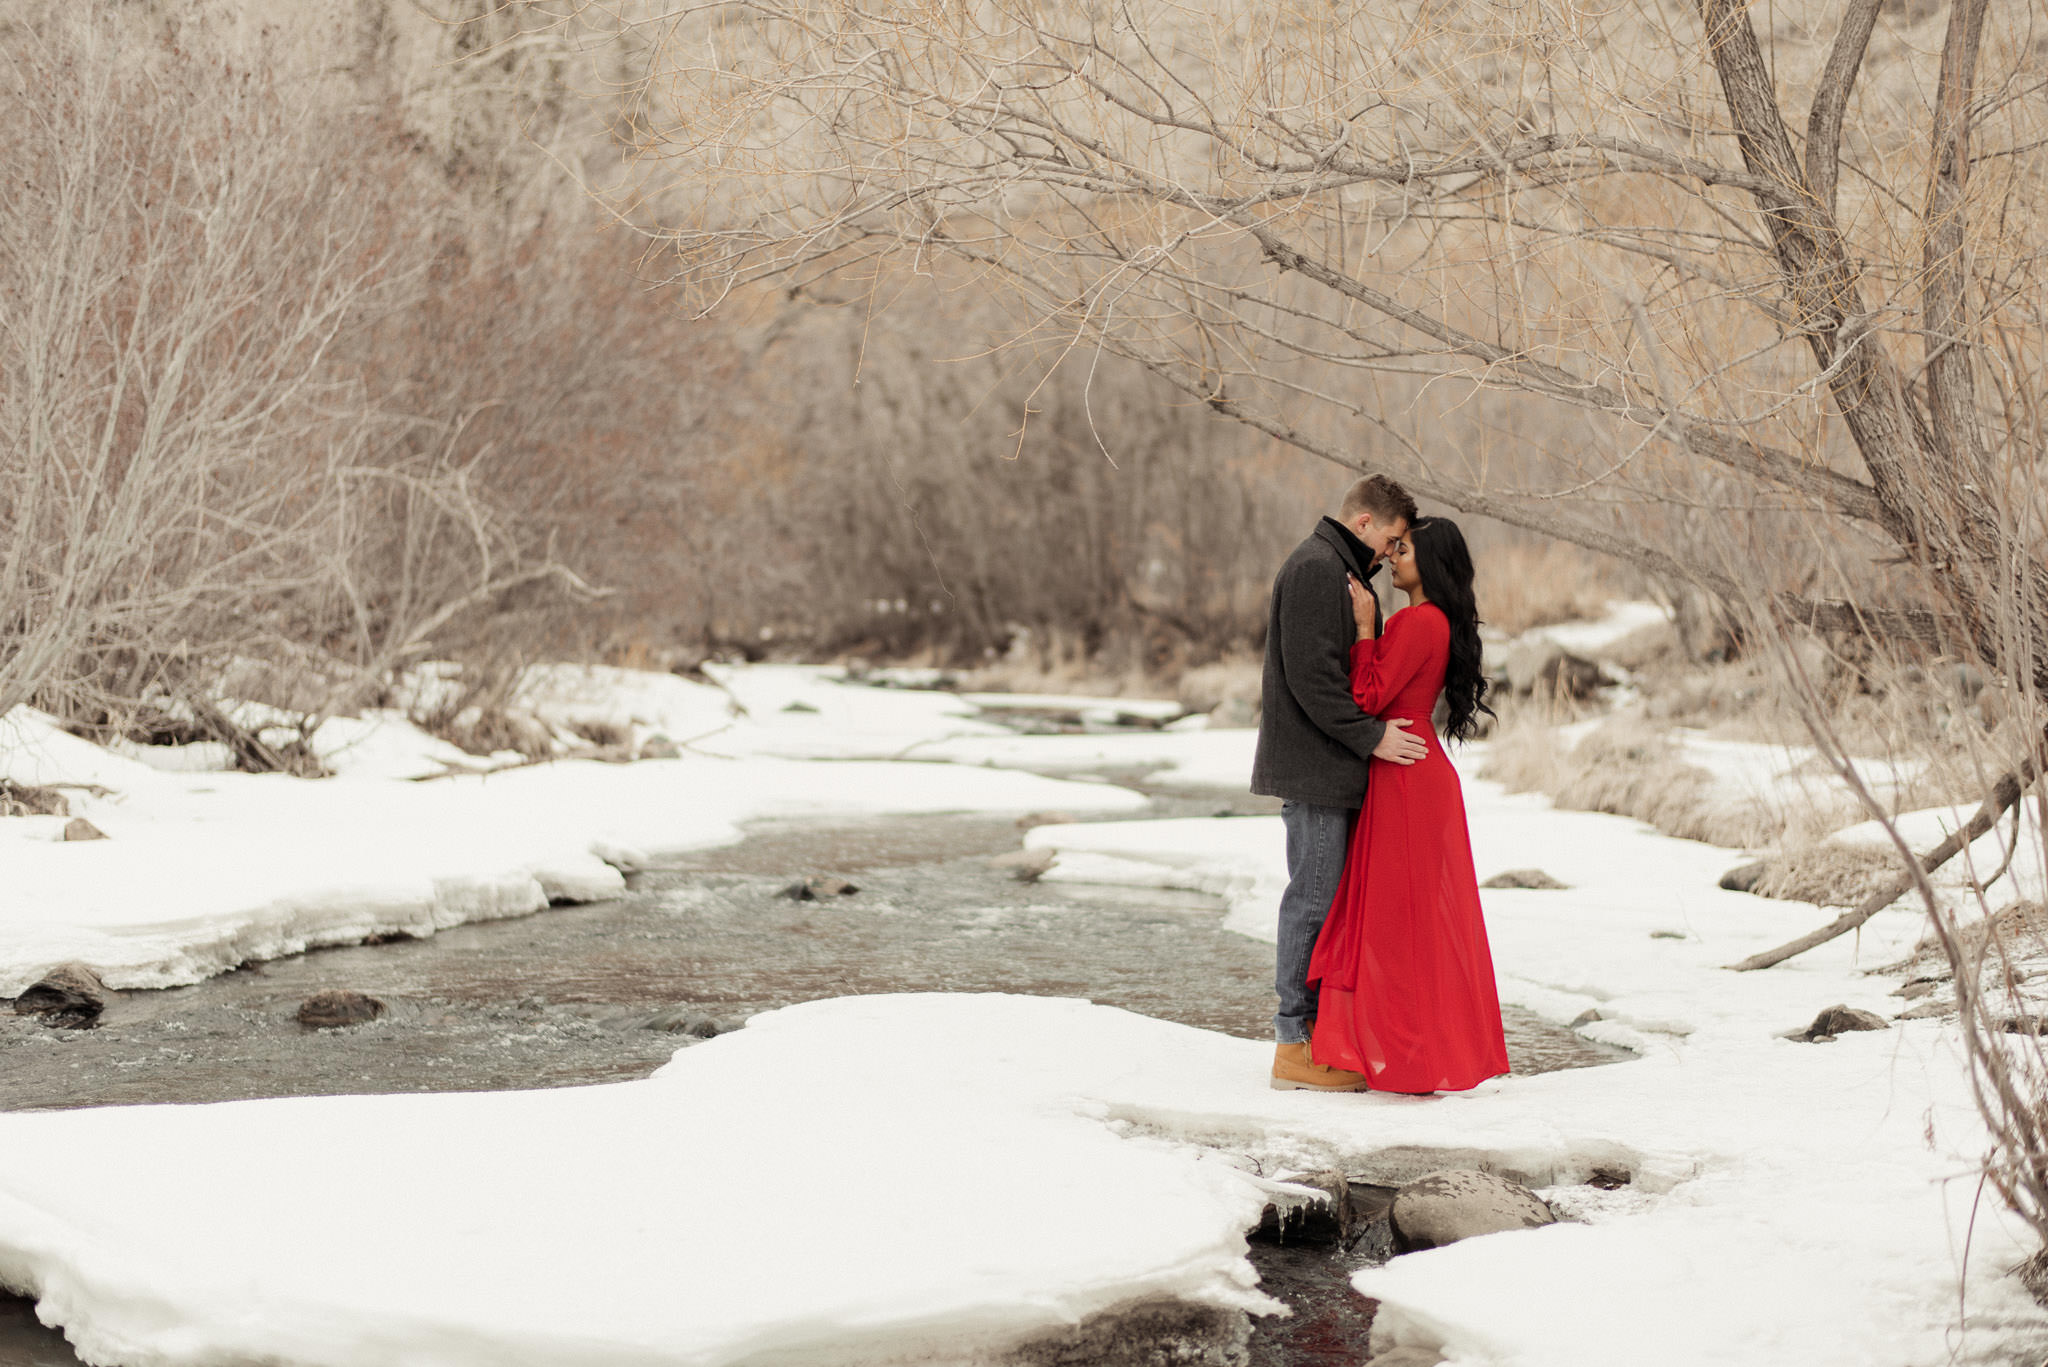 sandra-ryan-colorado-winter-snow-engagement-couples-valentines-red-houston-photographer-sm-17.jpg